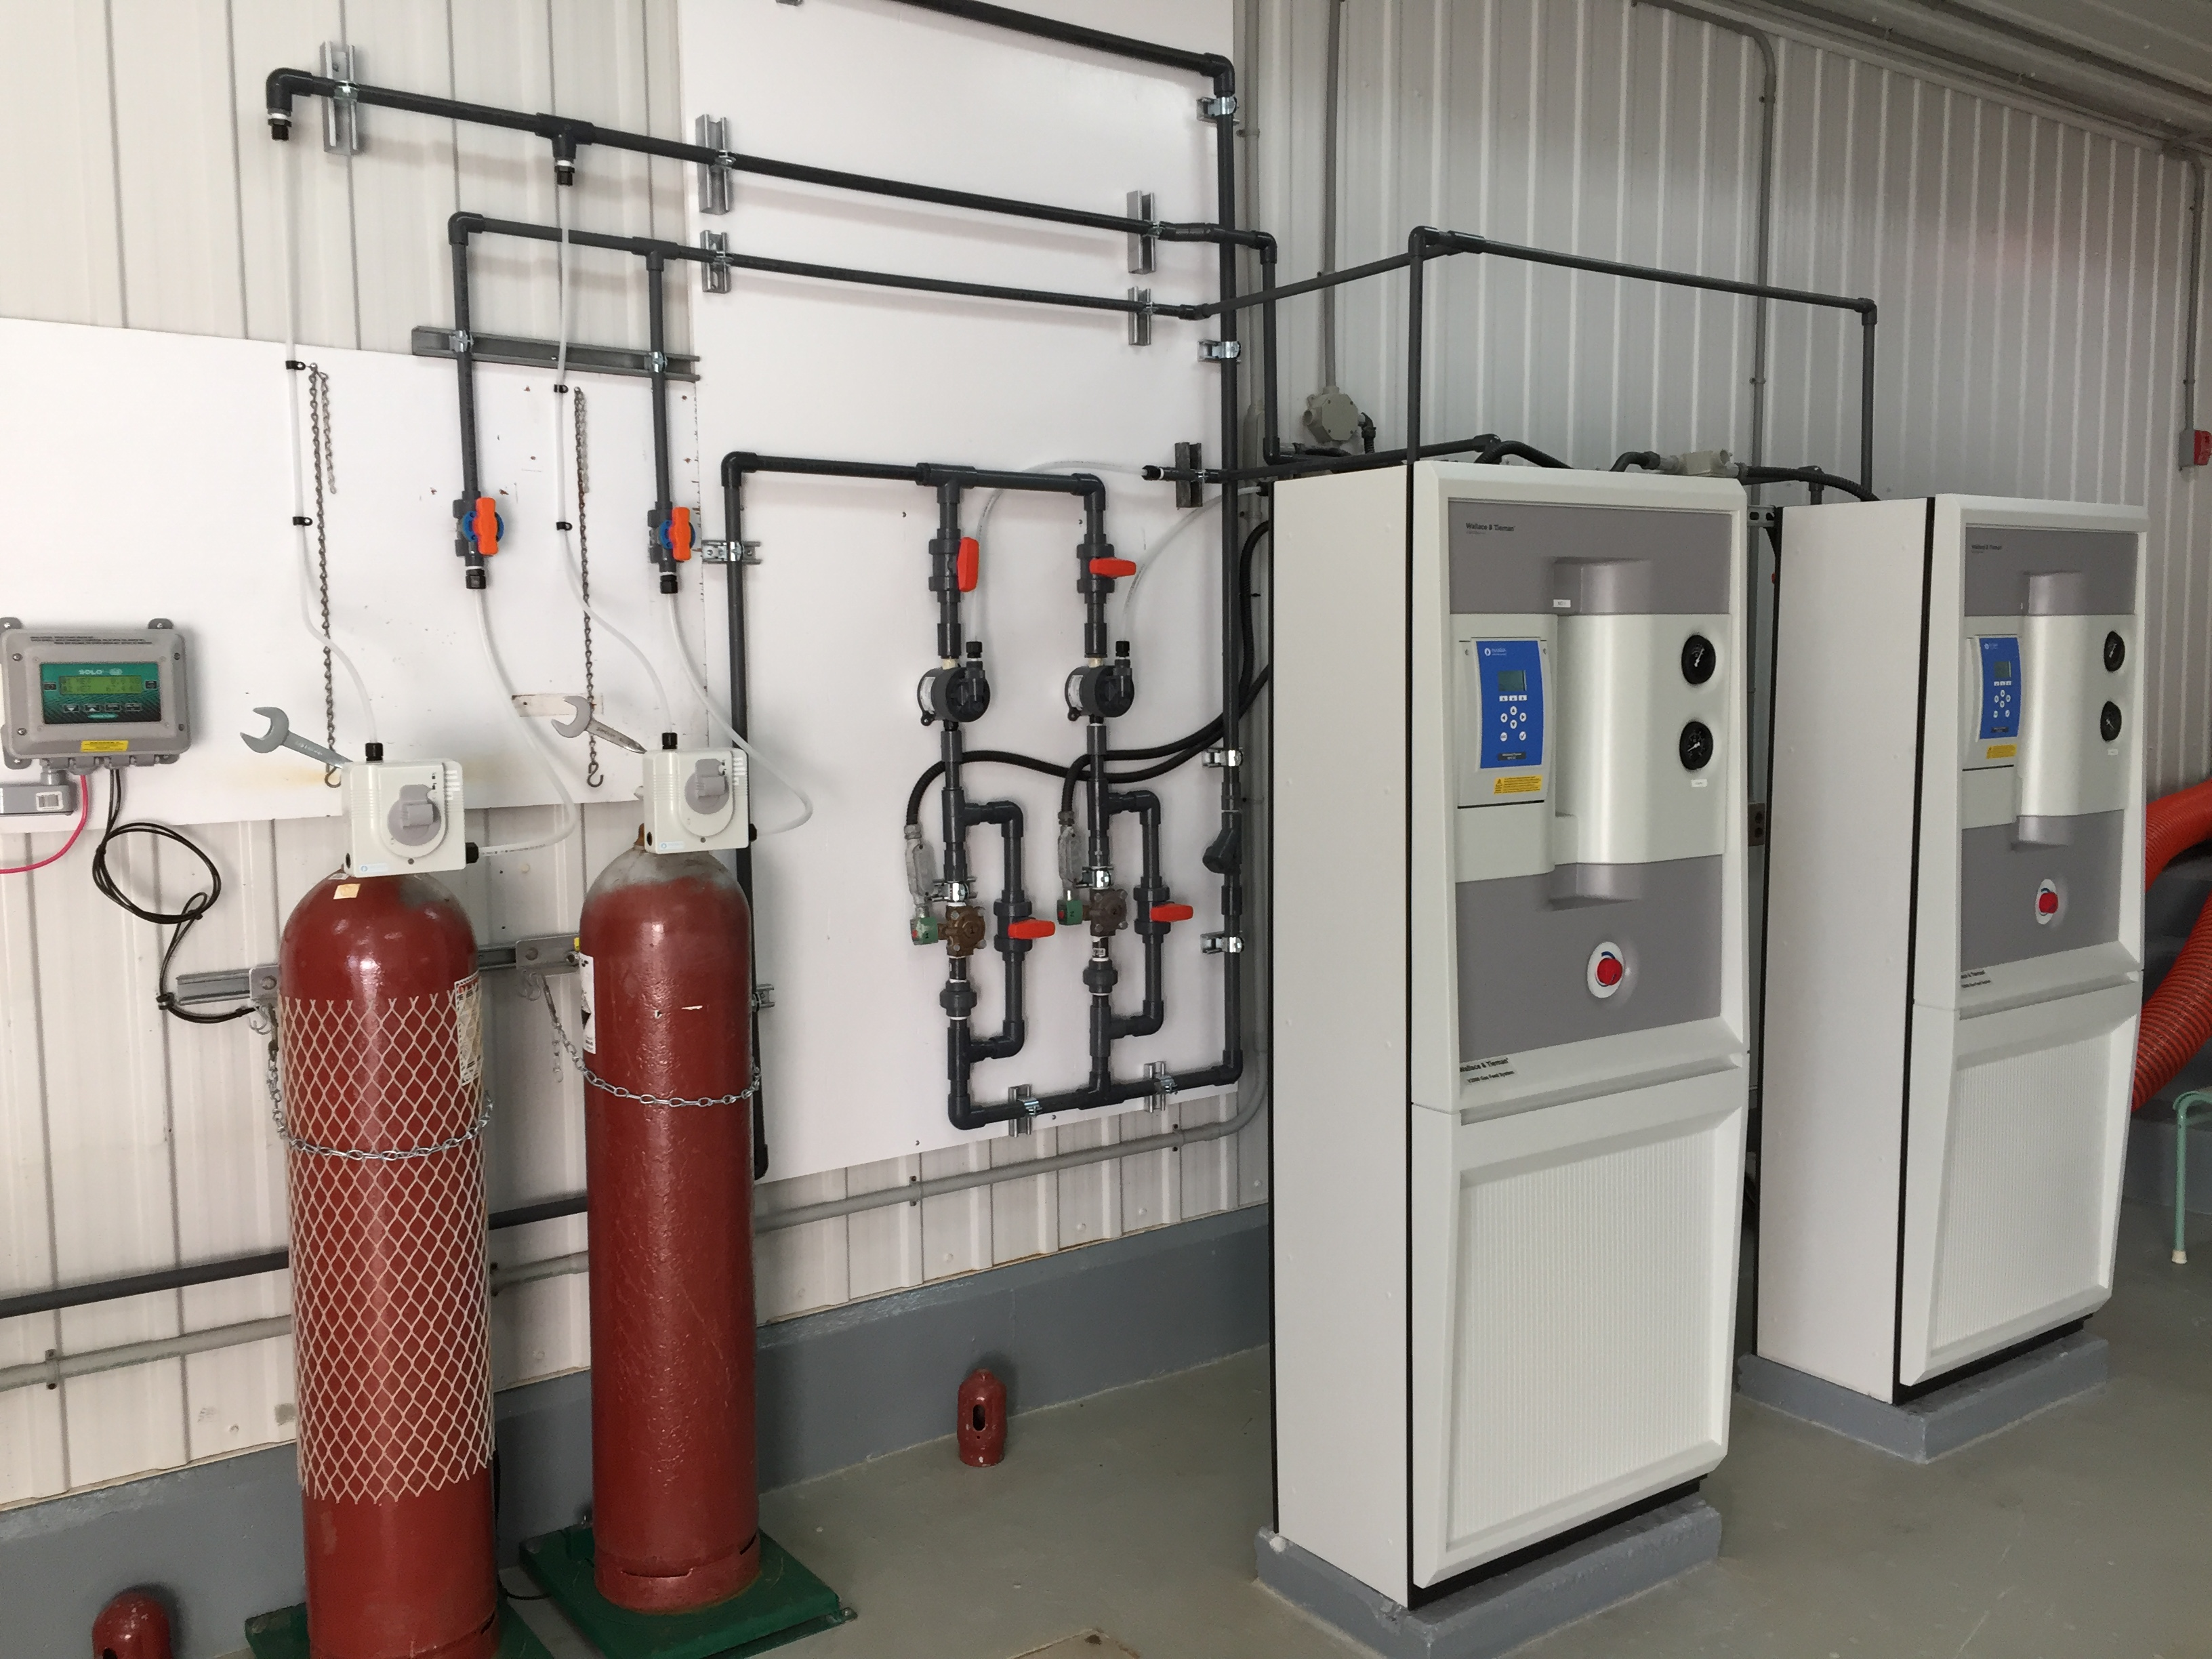 Chlore gazeux – Gas chlorine systems